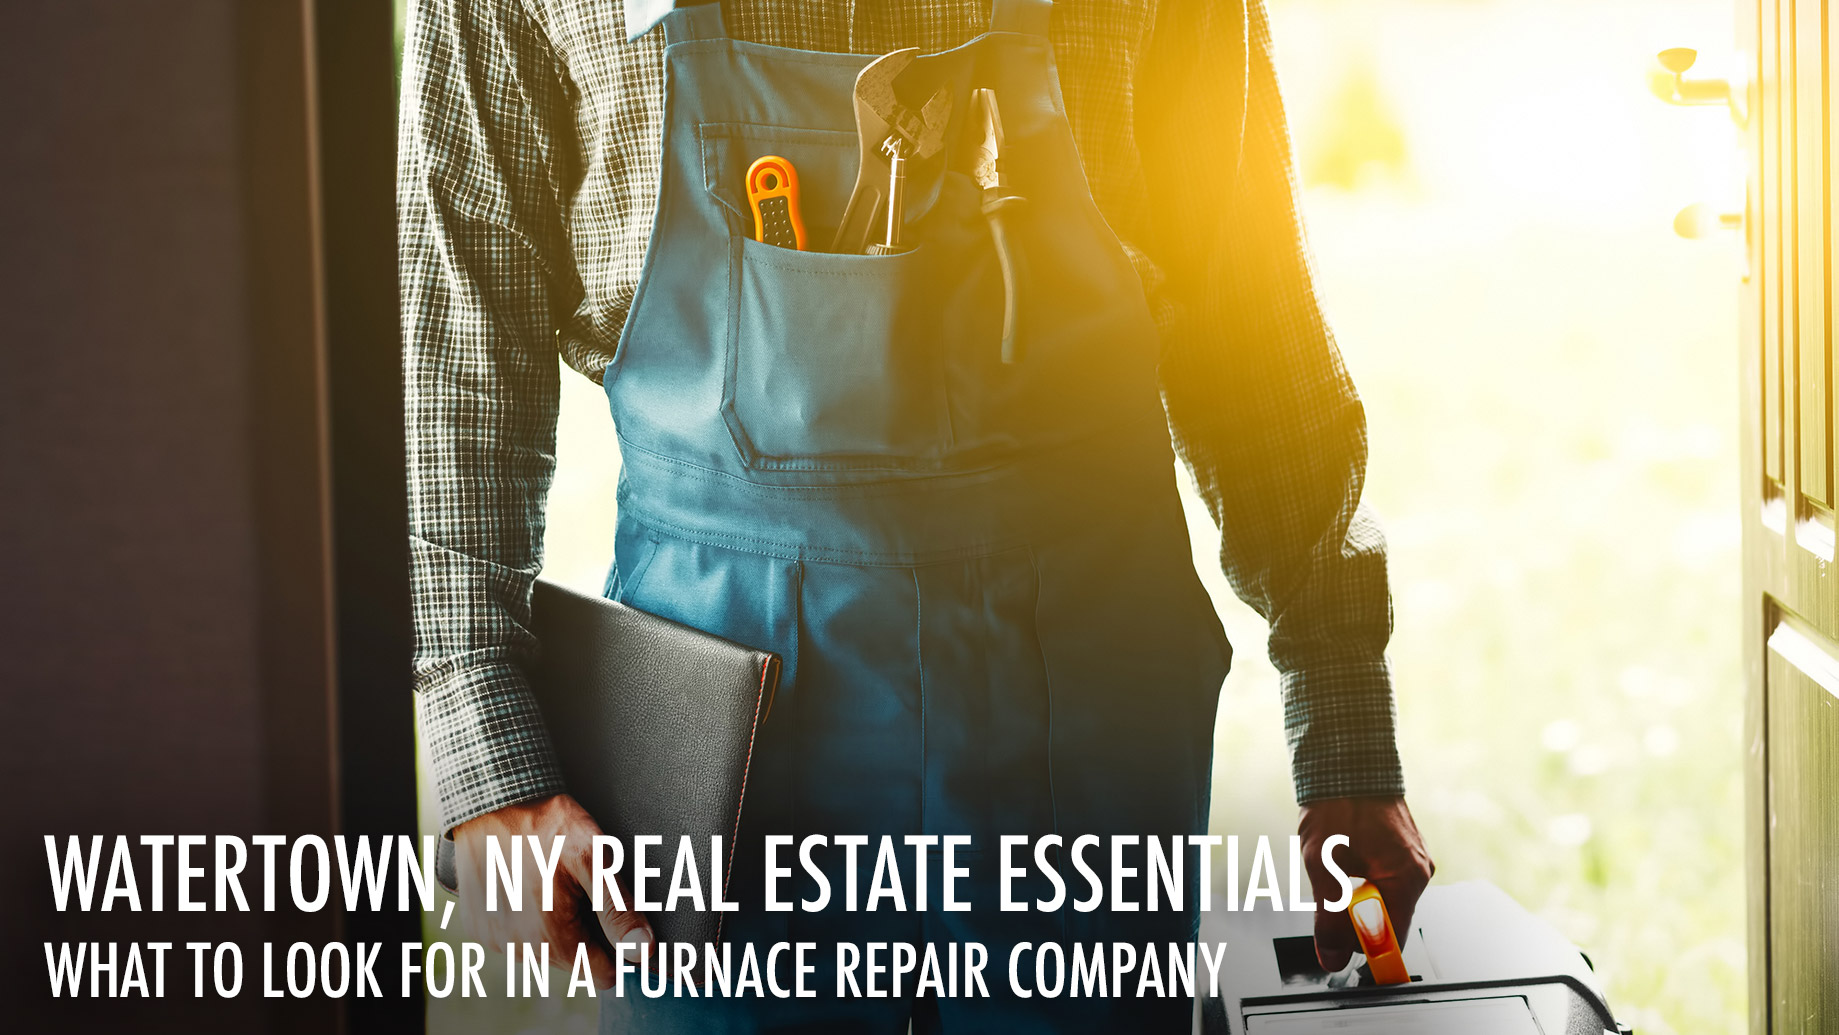 Watertown, NY Real Estate Essentials - What To Look For In A Furnace Repair Company